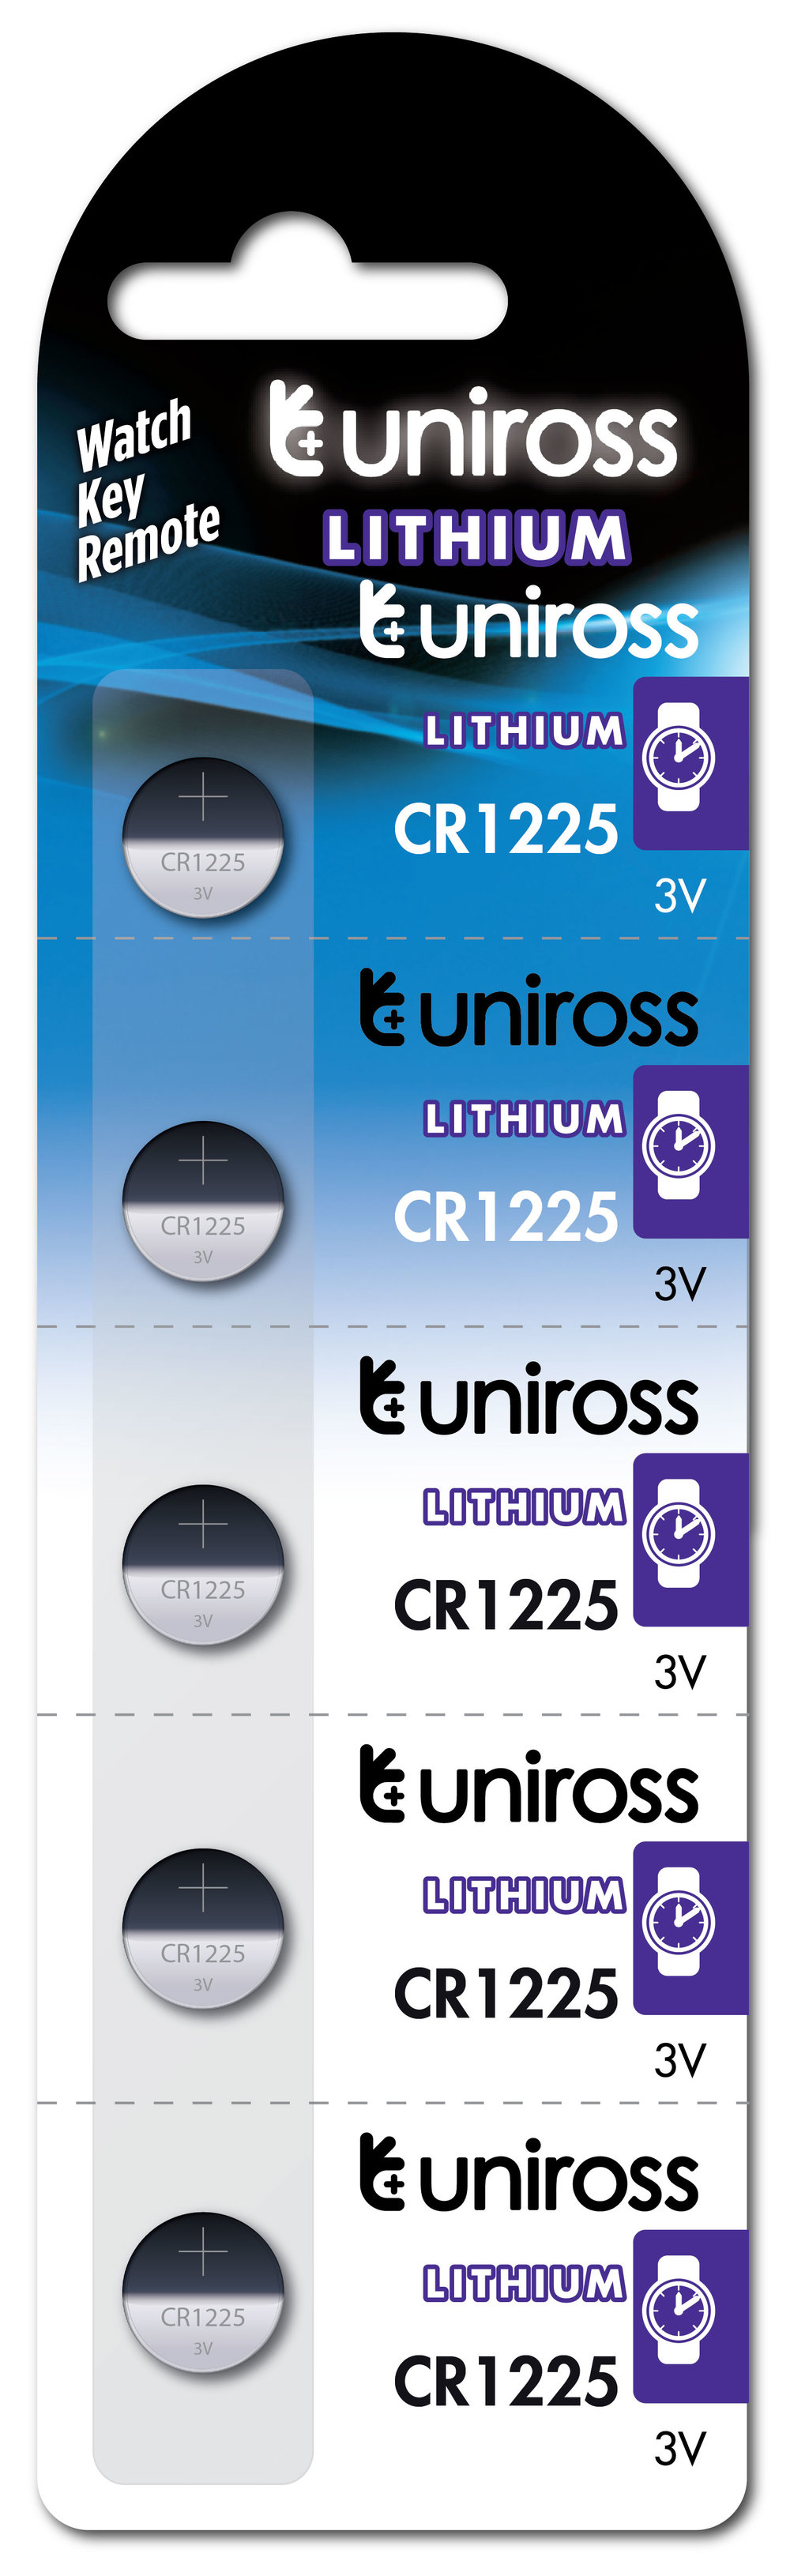 Button_Cell_[U5CR1225] UNIROSS BP5 CR1225 LITHIUM.jpg